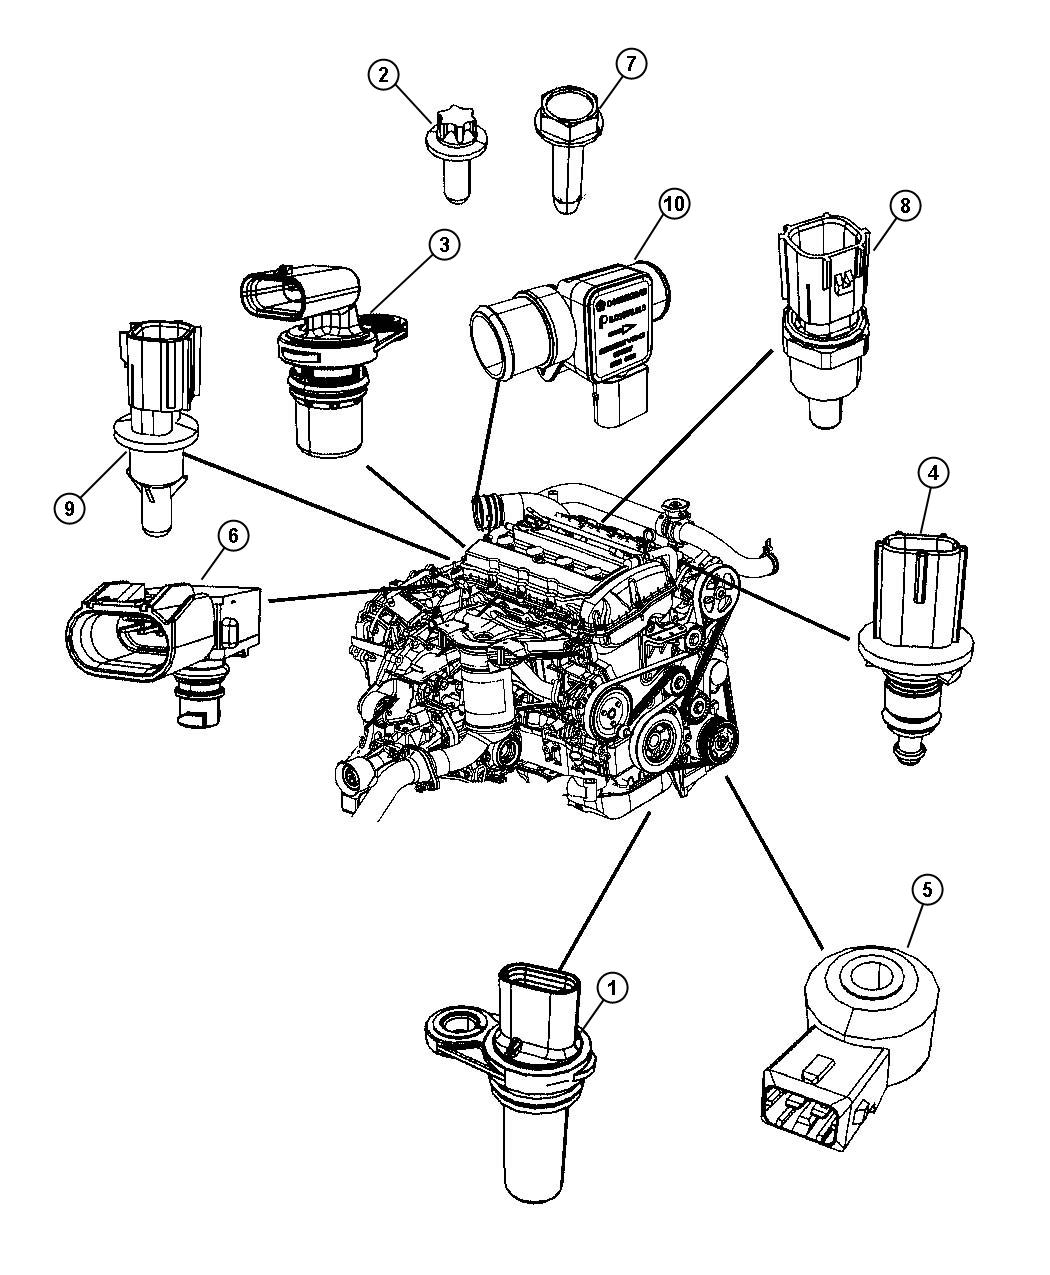 [DIAGRAM] Wiring Diagram For 2010 Dodge Avenger FULL